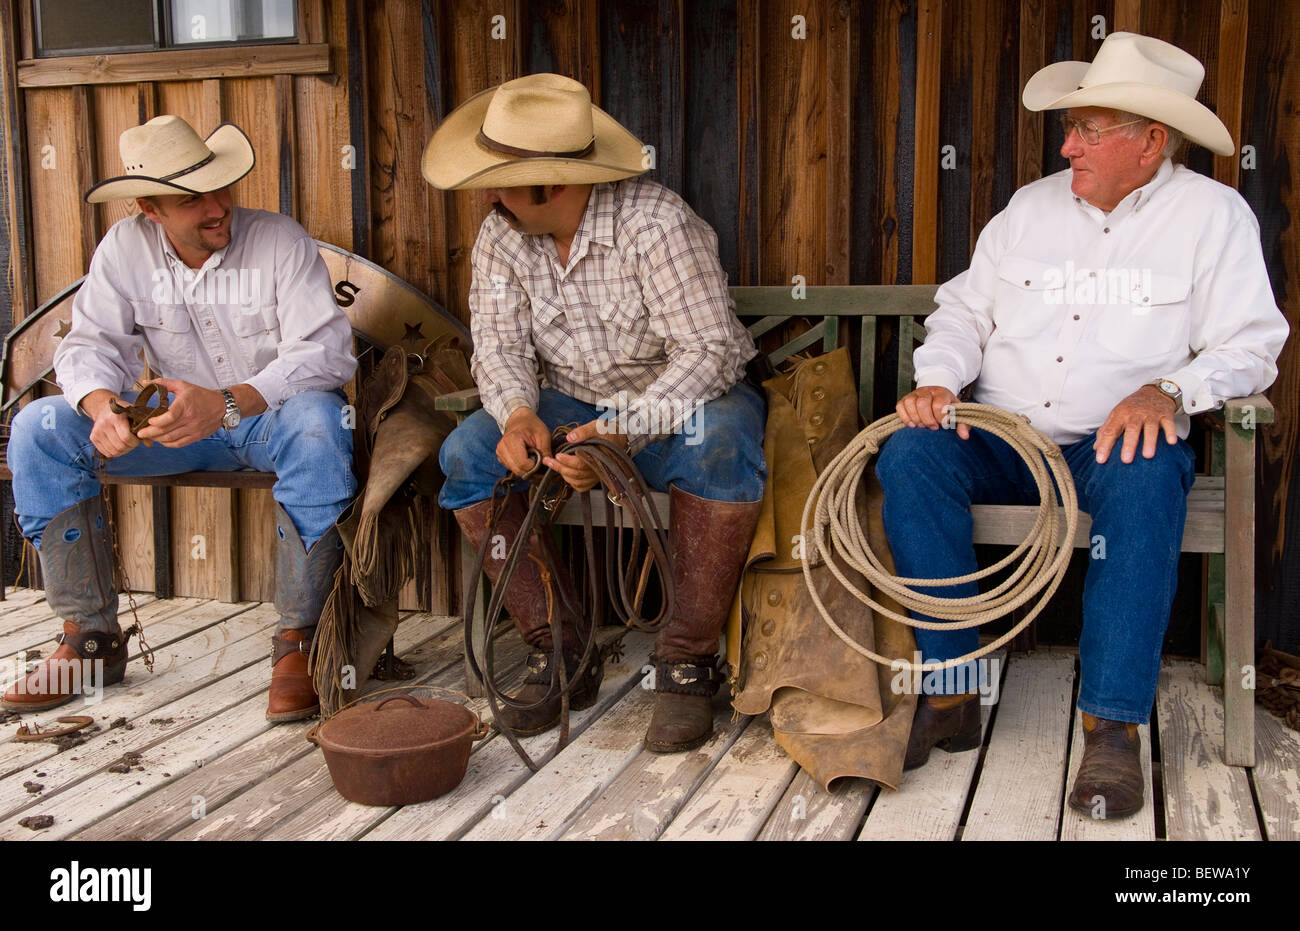 Three cowboys sitting side by side, full shot, USA - Stock Image